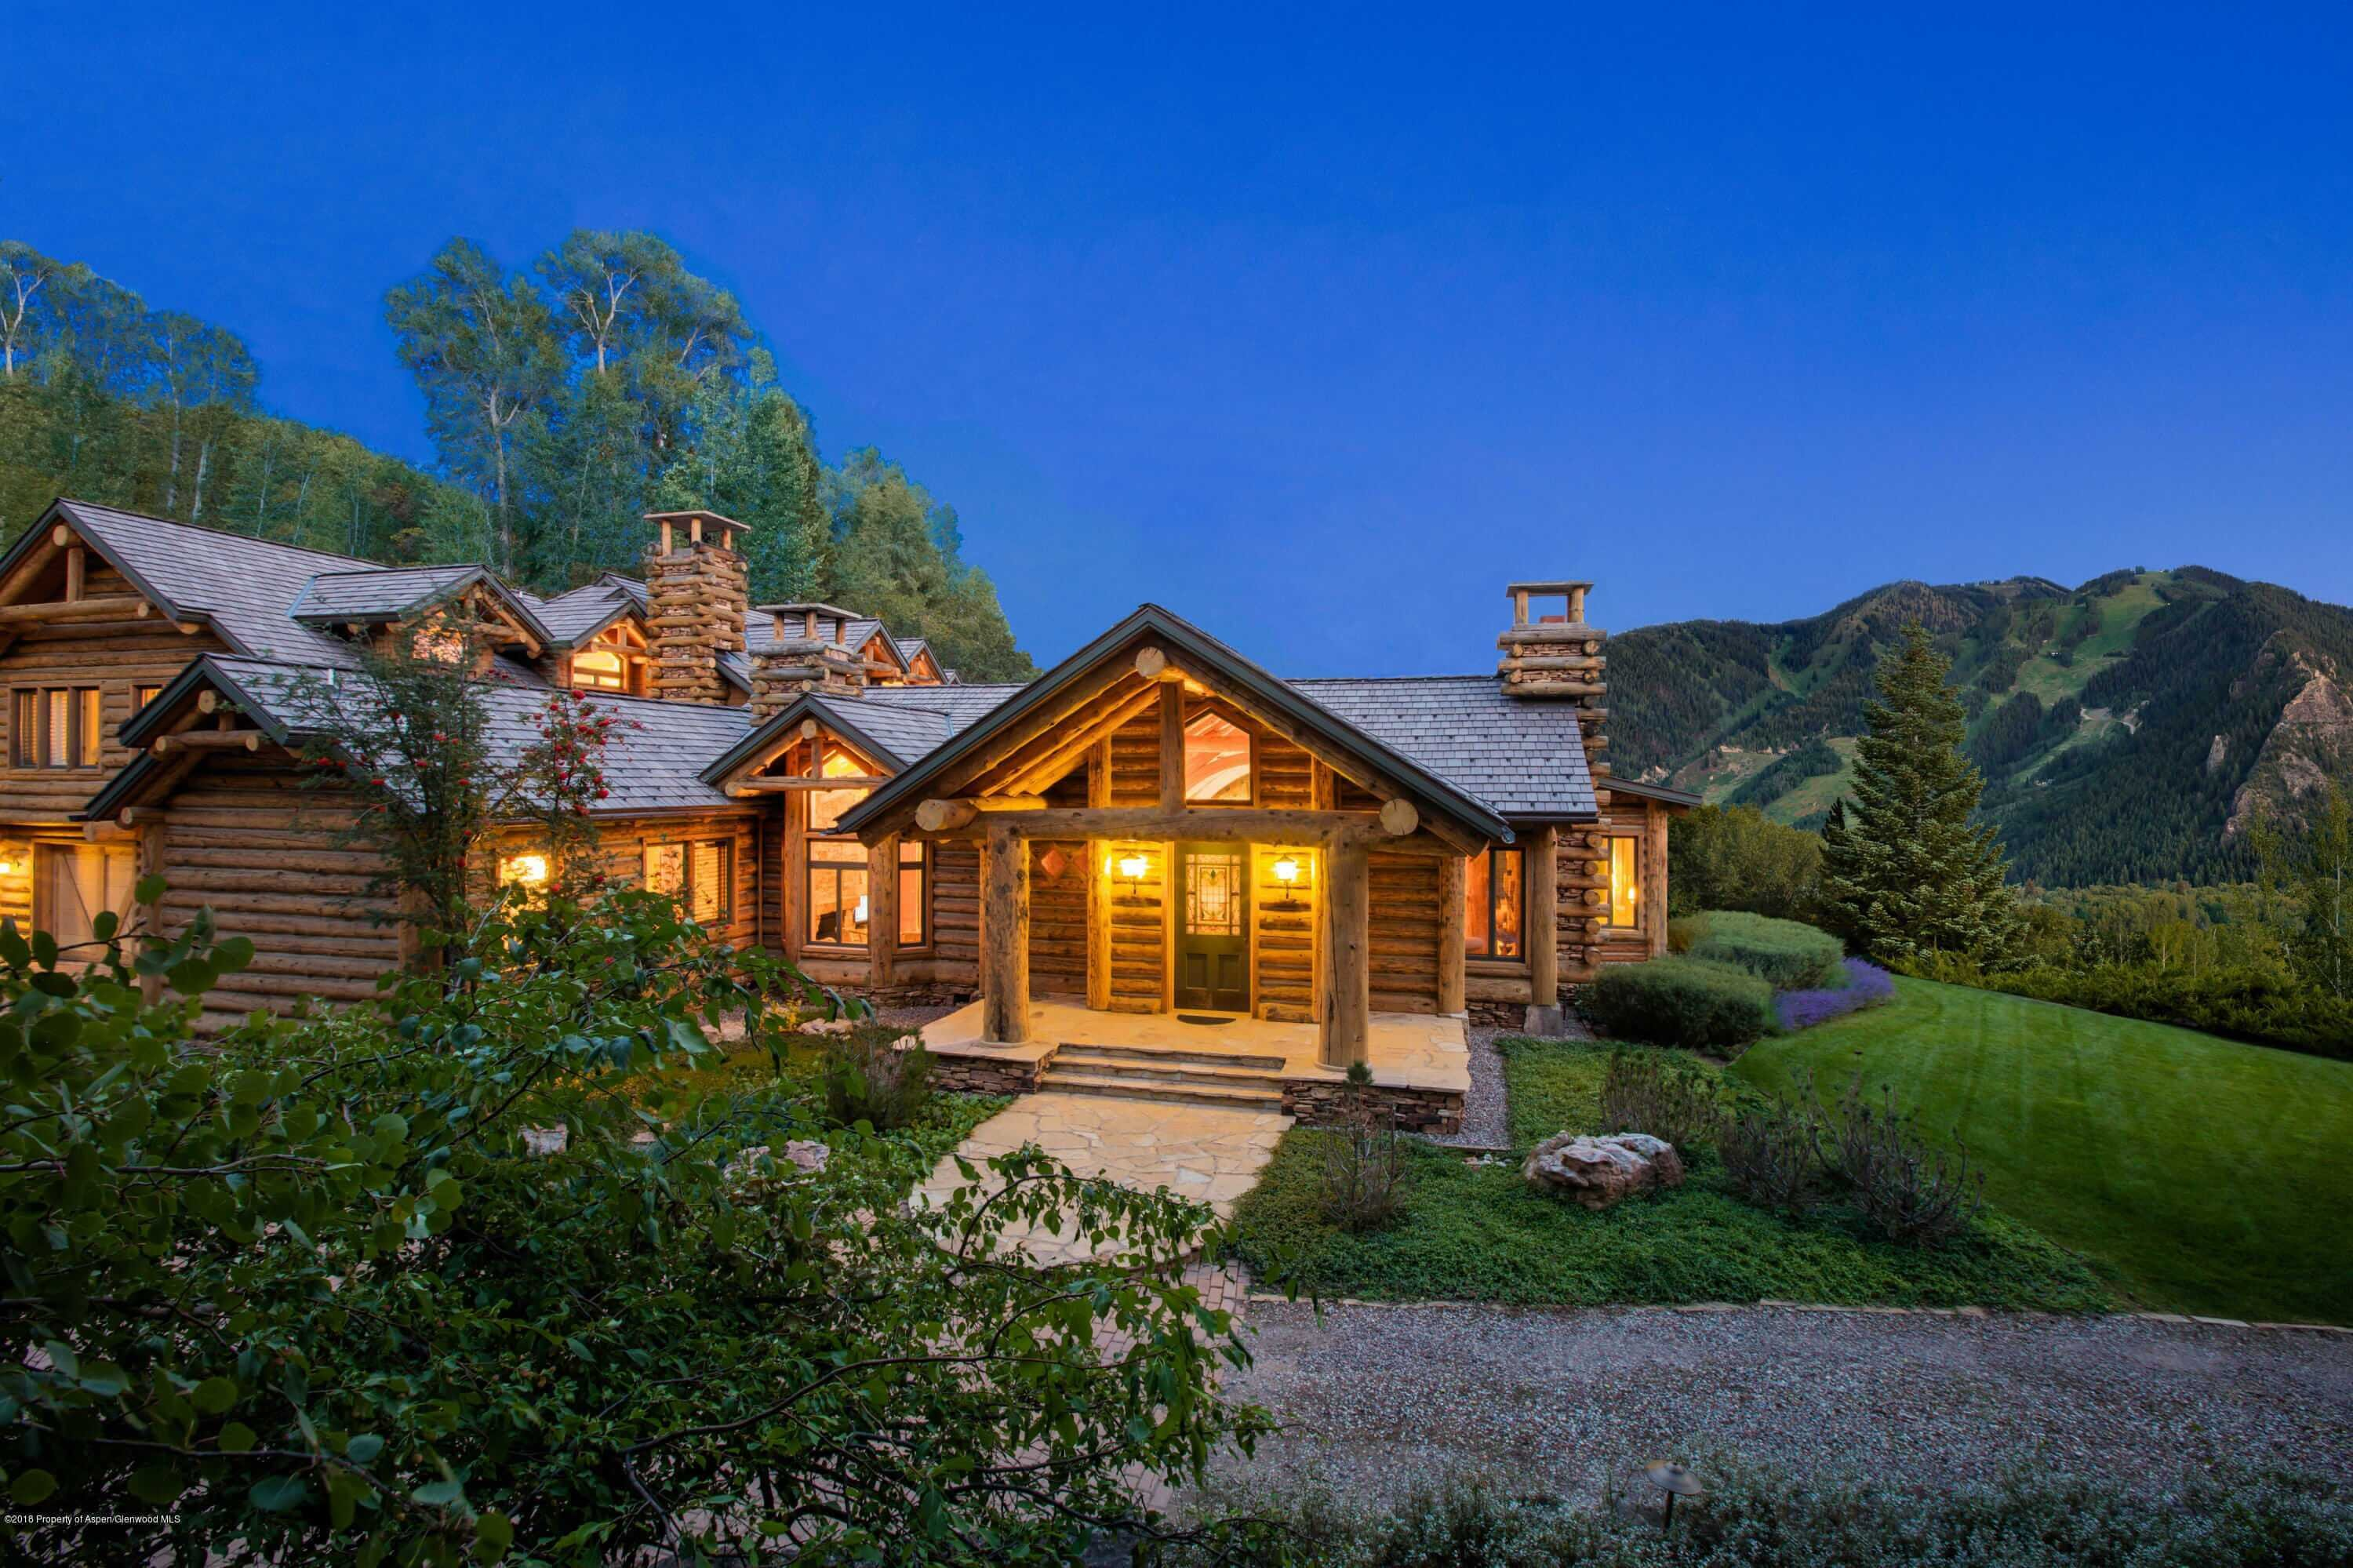 Log Home on Prestigious Willoughby Way Sells for $13.1M/$1,791 Sq Ft After 1,100 Days on Market Image